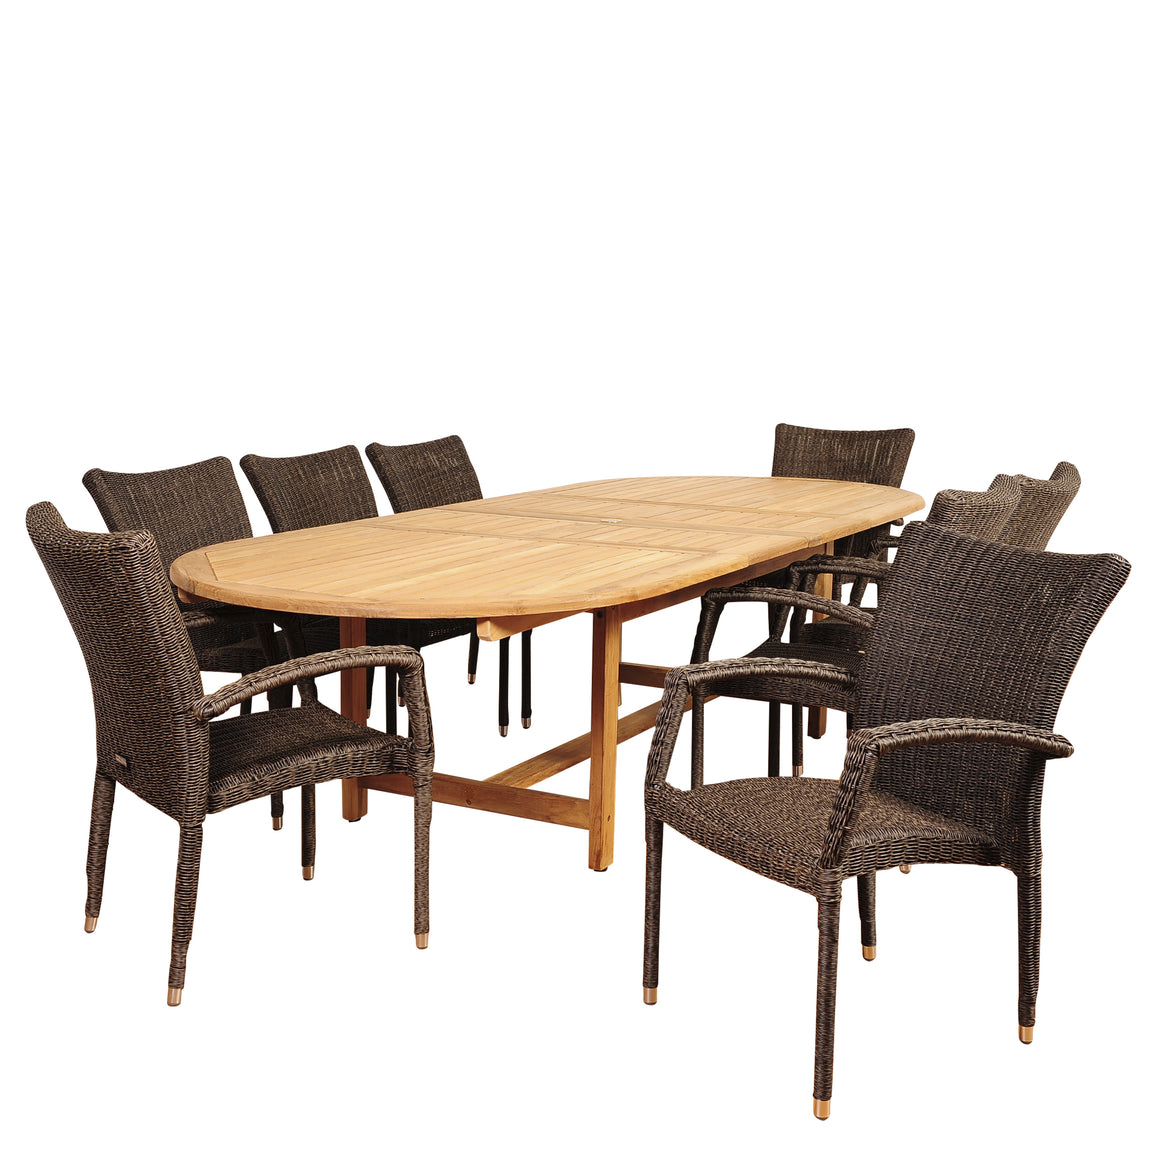 Amazonia Ocean Grove 9 Piece Dining Set , International Home Miami- grayburd